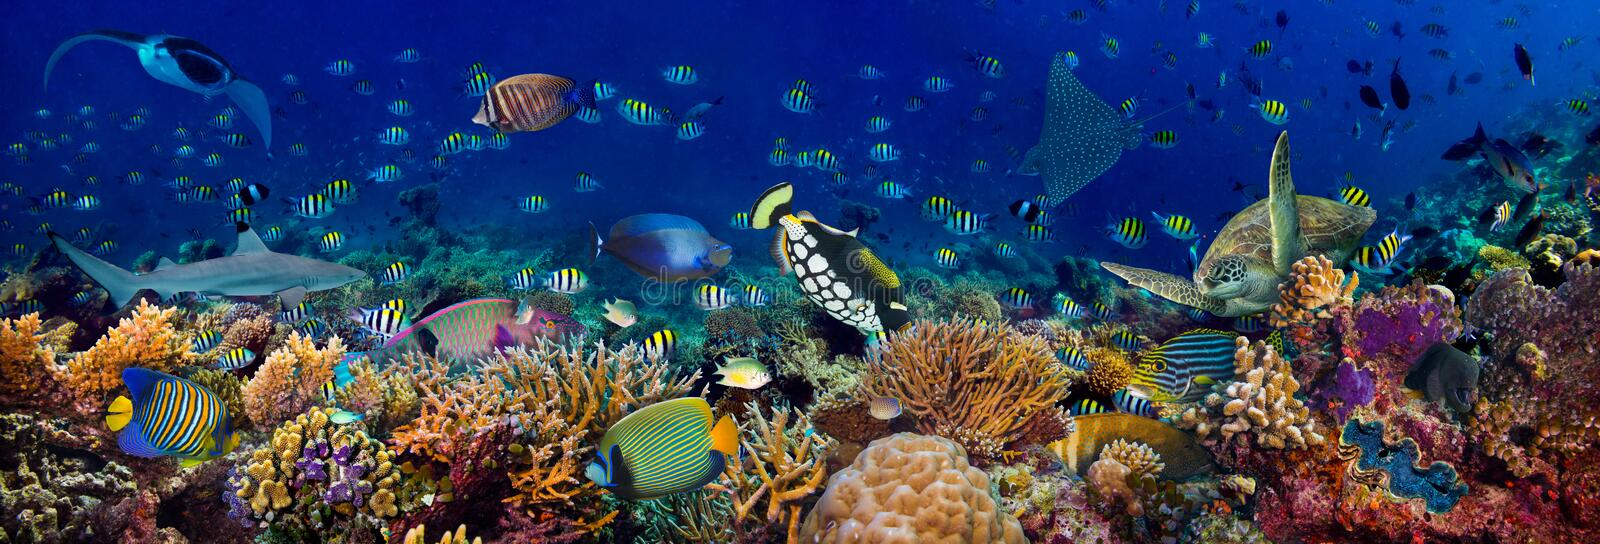 Underwater coral reef landscape wide 3to1 panorama background  in the deep blue ocean with colorful fish sea turtle marine wild stock photos